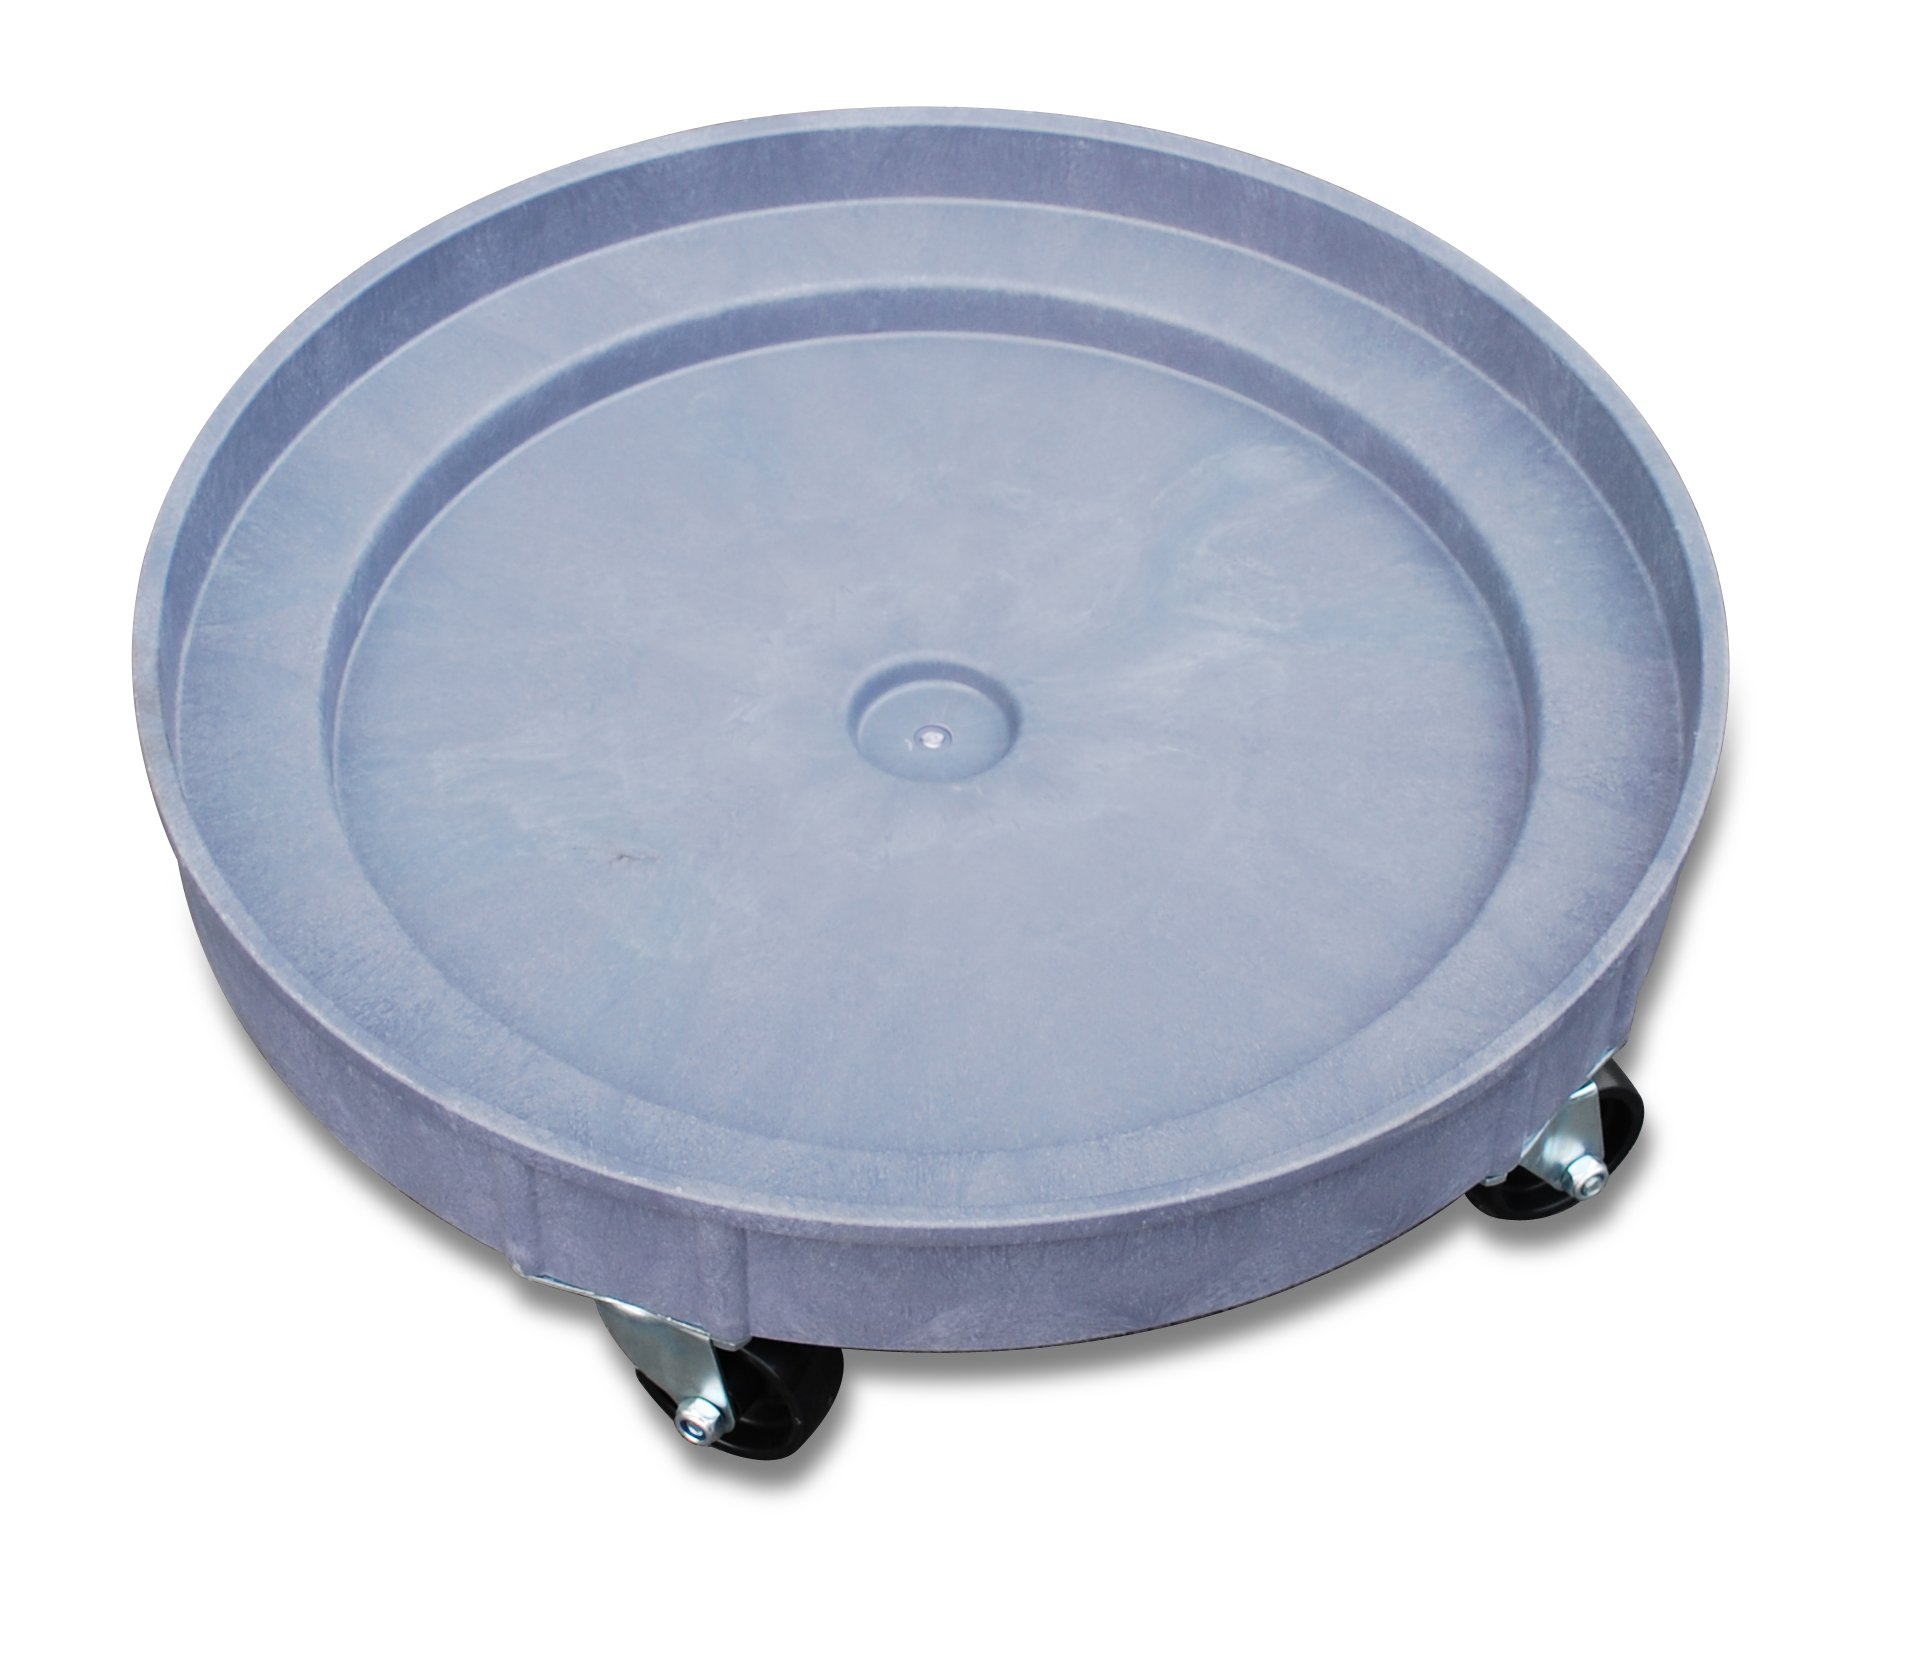 JLTC PDD35 Plastic Drum Dolly for 30 gal and 55 gal Drums, 900 lb. Capacity